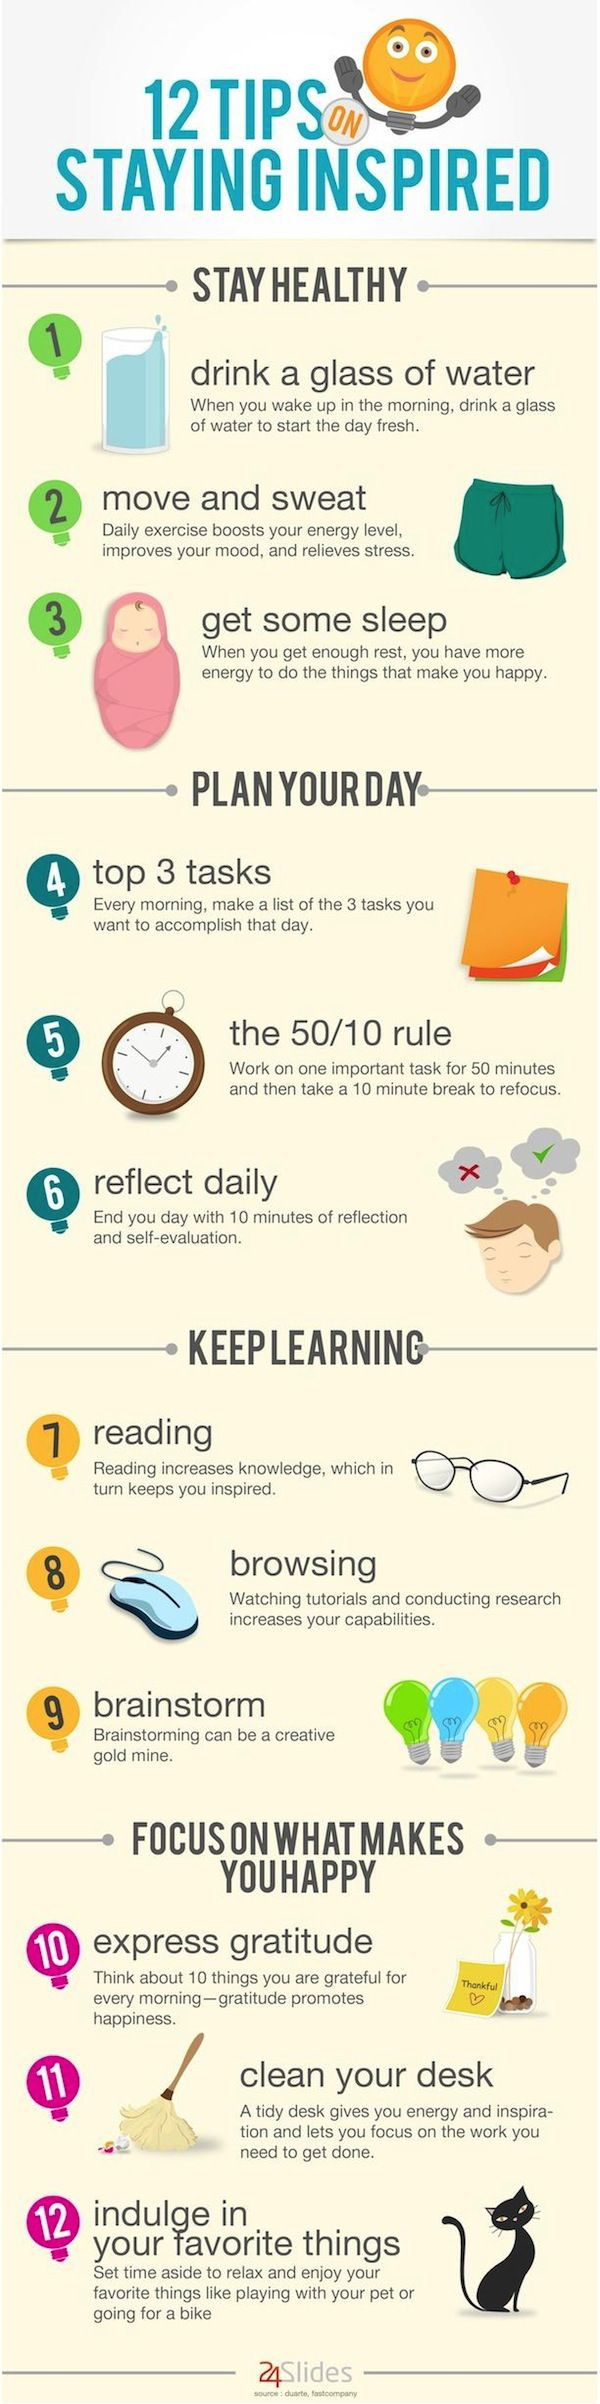 12 Things To Keep You Inspired During the Day. This is brilliant.